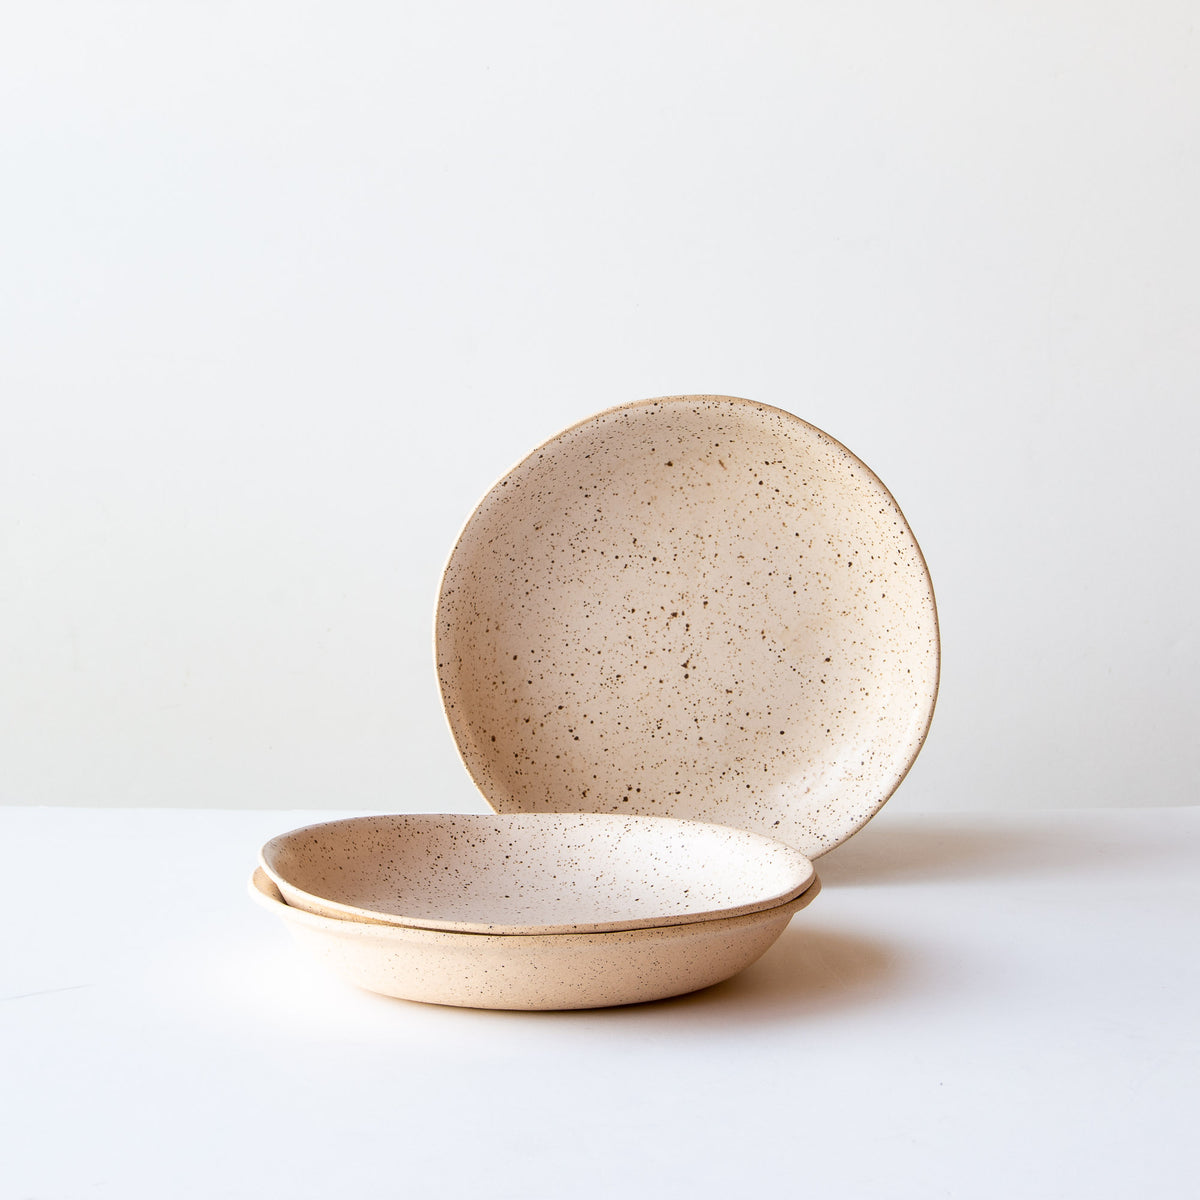 Three Small Freckled Pasta Bowls - Handmade in Off-White Glazed Stoneware - Sold by Chic & Basta